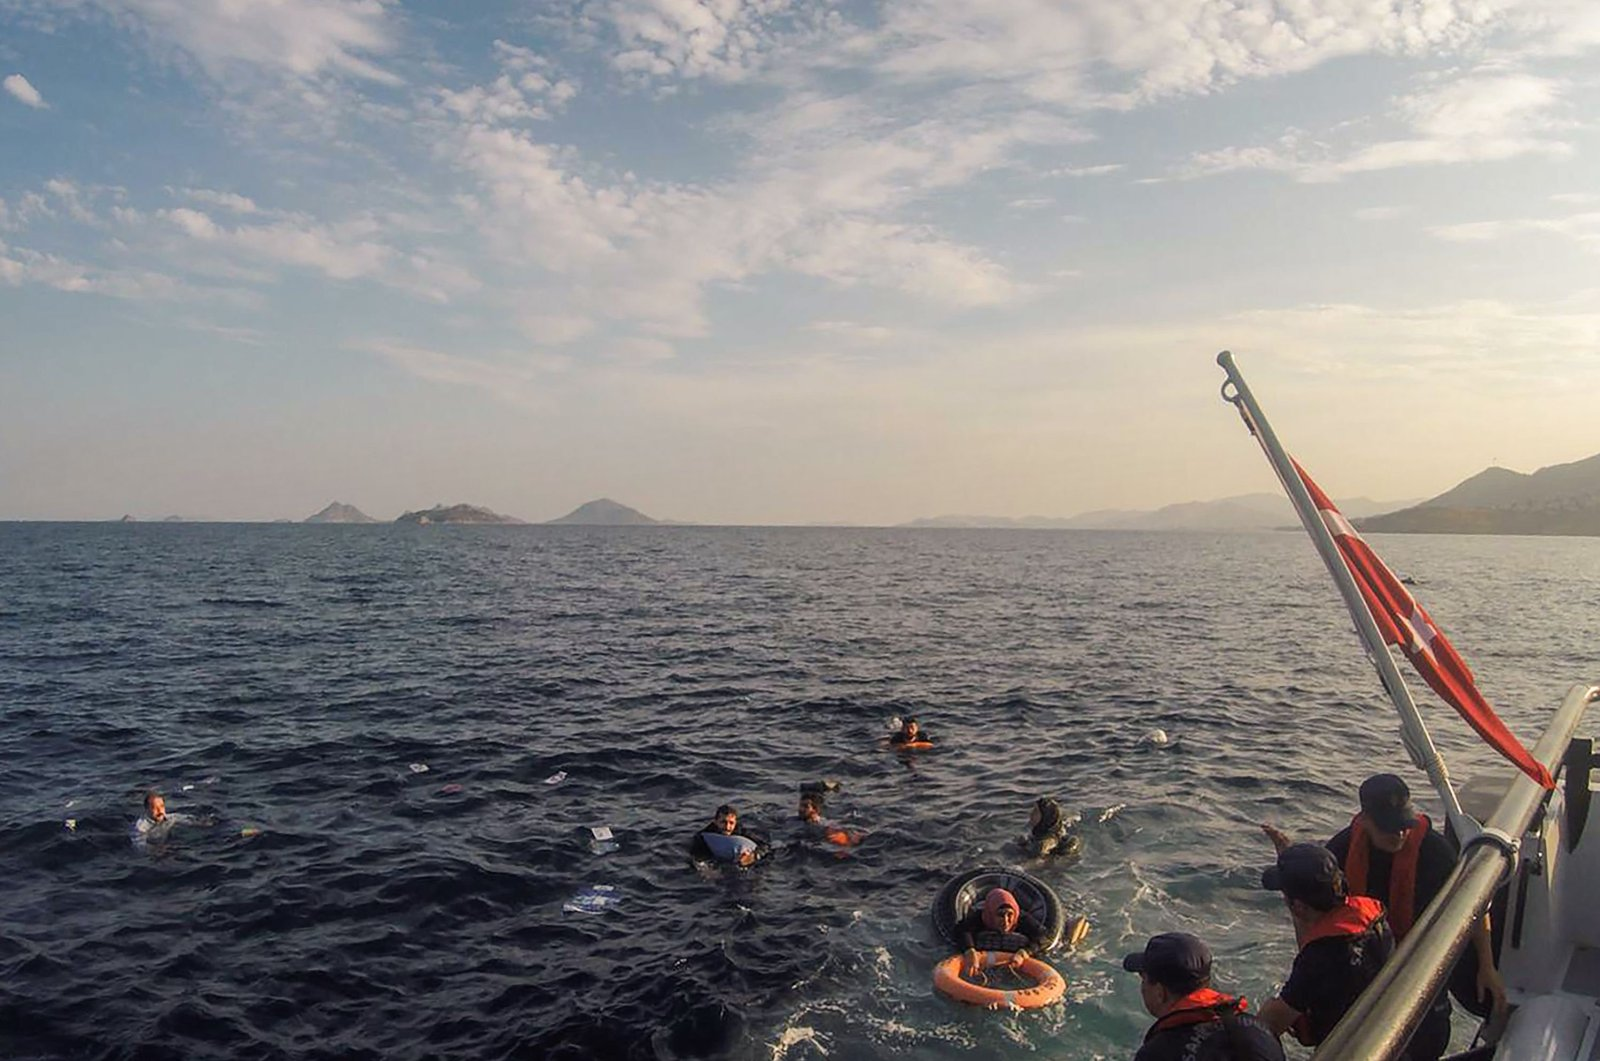 This handout picture released and taken on June 17, 2019 by the Turkish coastguard shows illegal migrants being rescued after their boat sank in the Aegean sea, off the coast of southwestern Turkey. (AFP Photo)